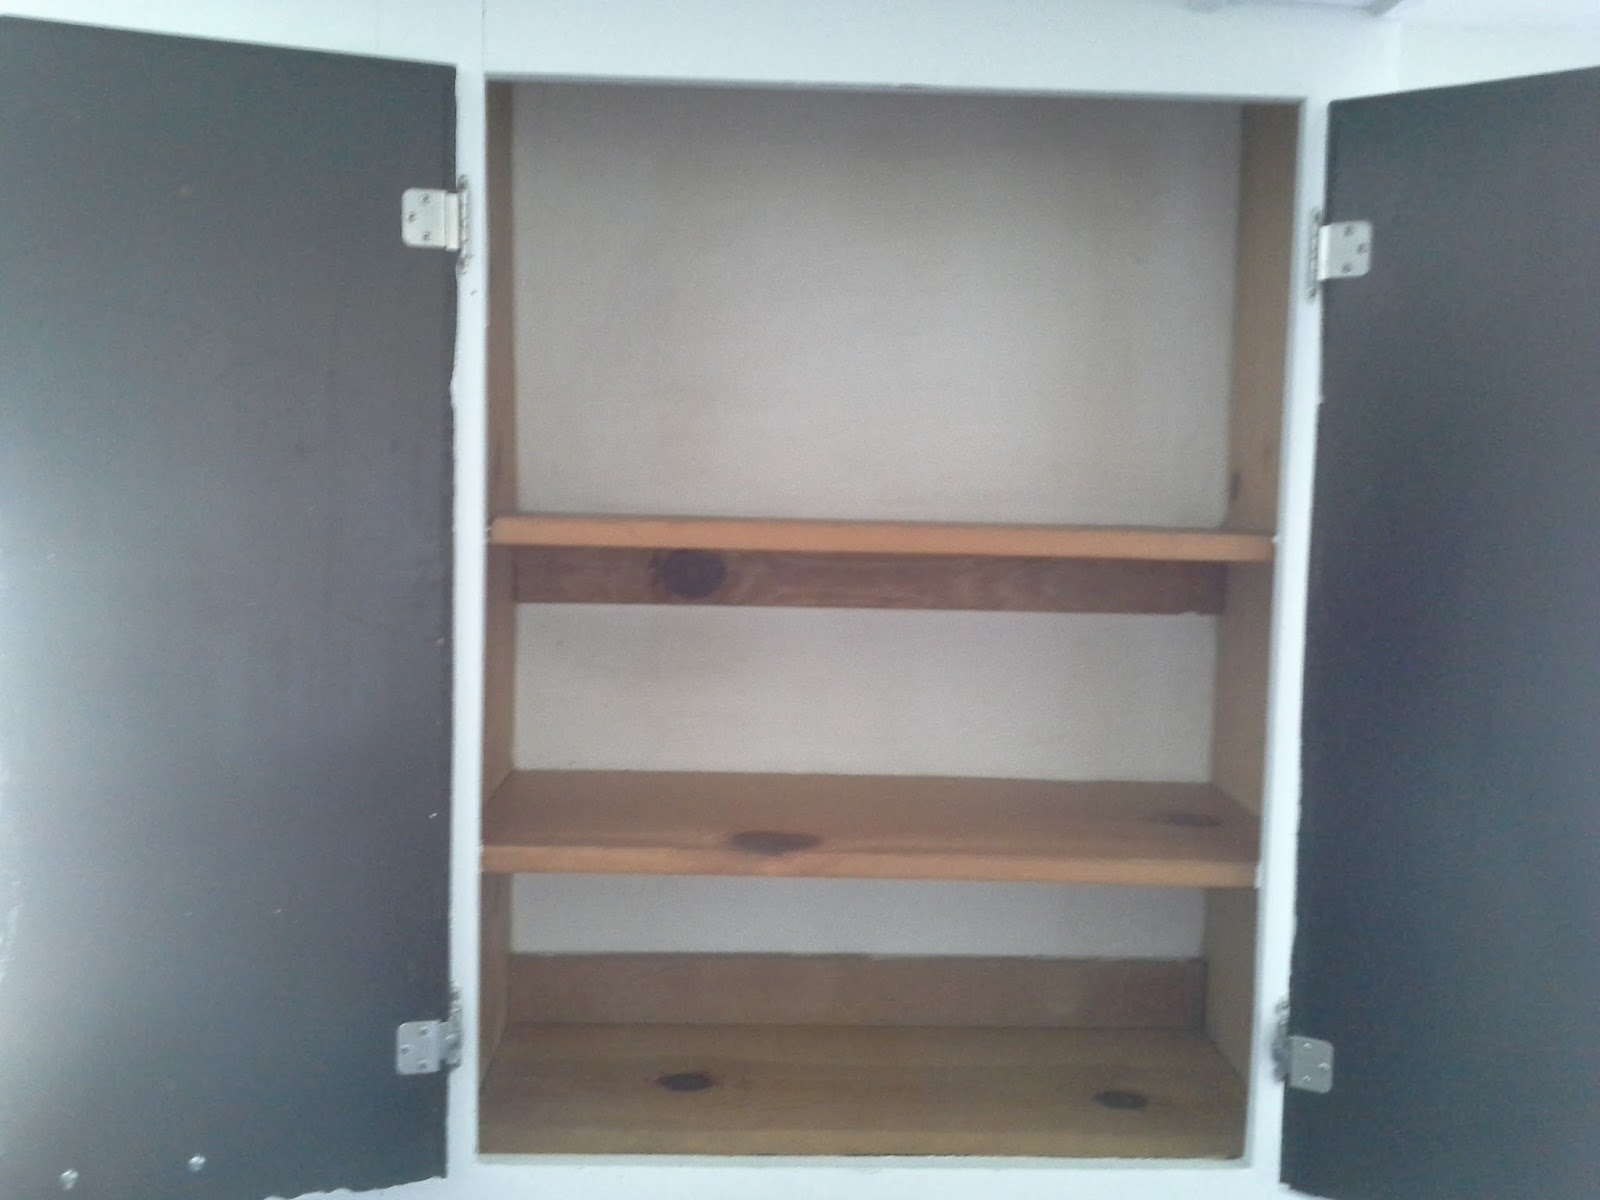 Lilly's Home Designs: Lining Shelves With Contact Paper